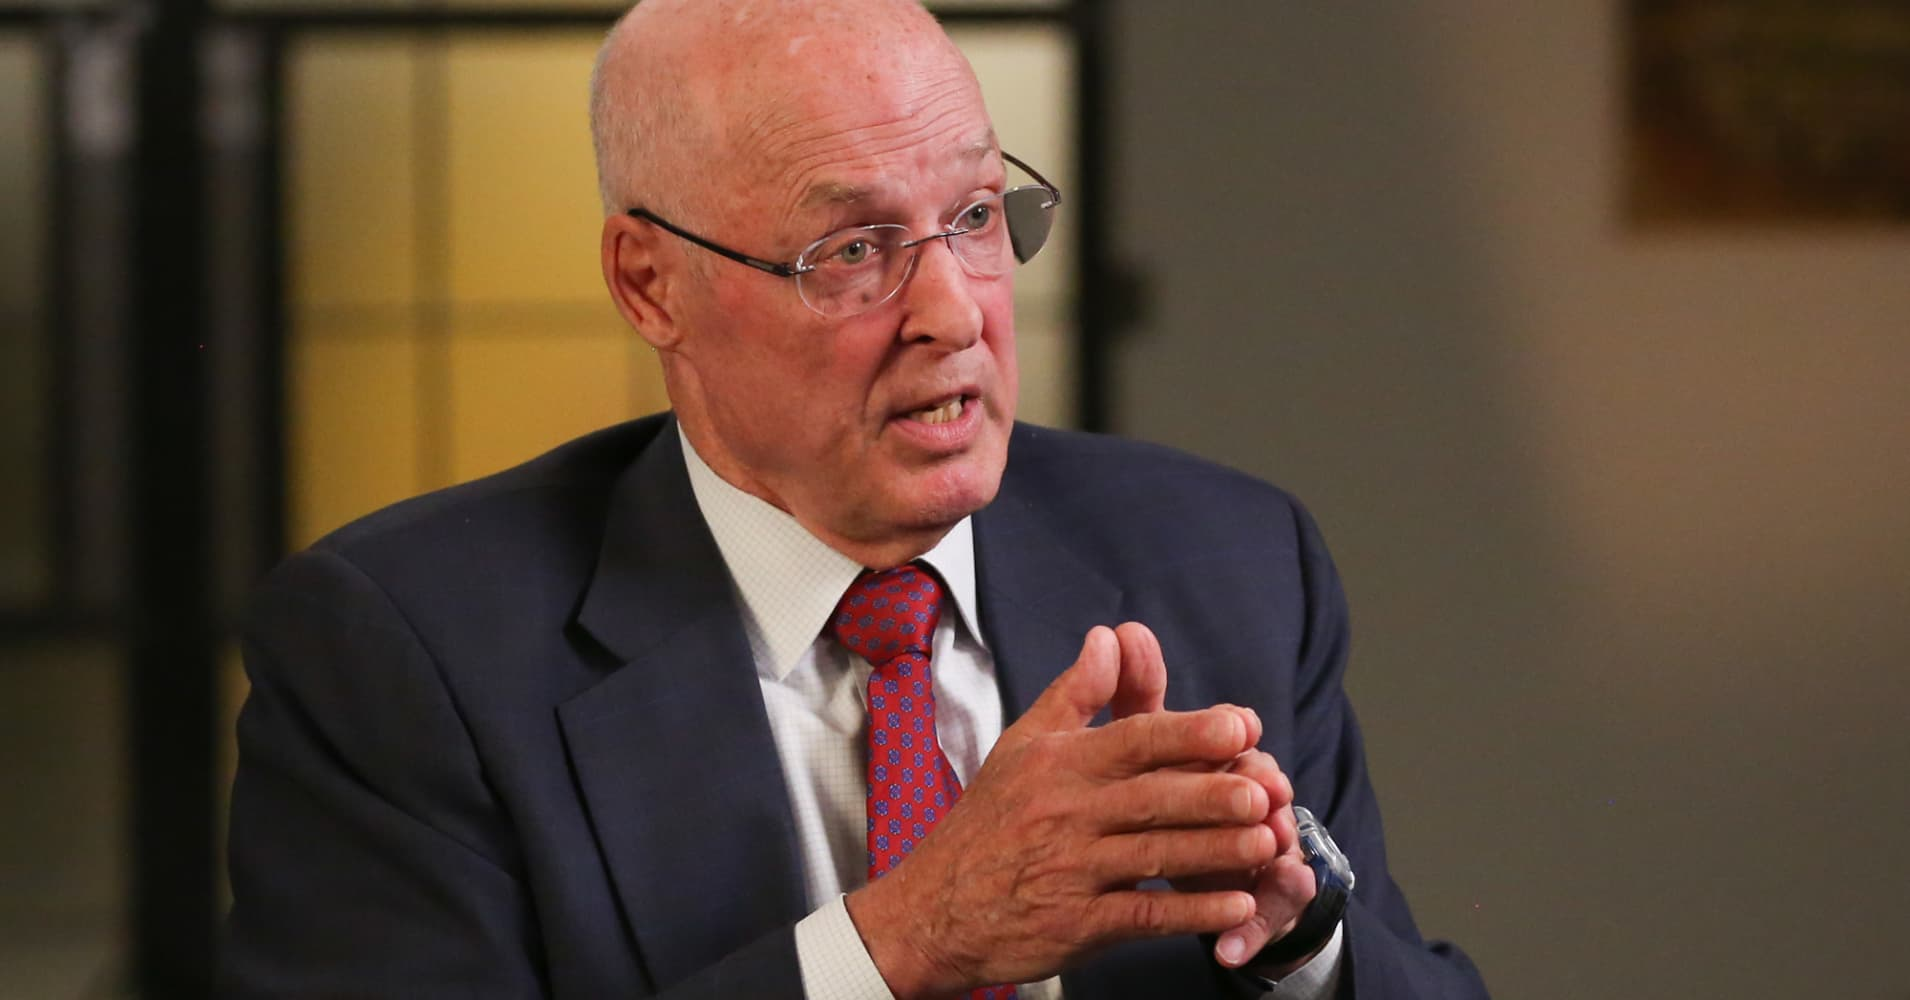 'Economic Iron Curtain' looms for US and China, former Treasury chief Paulson says